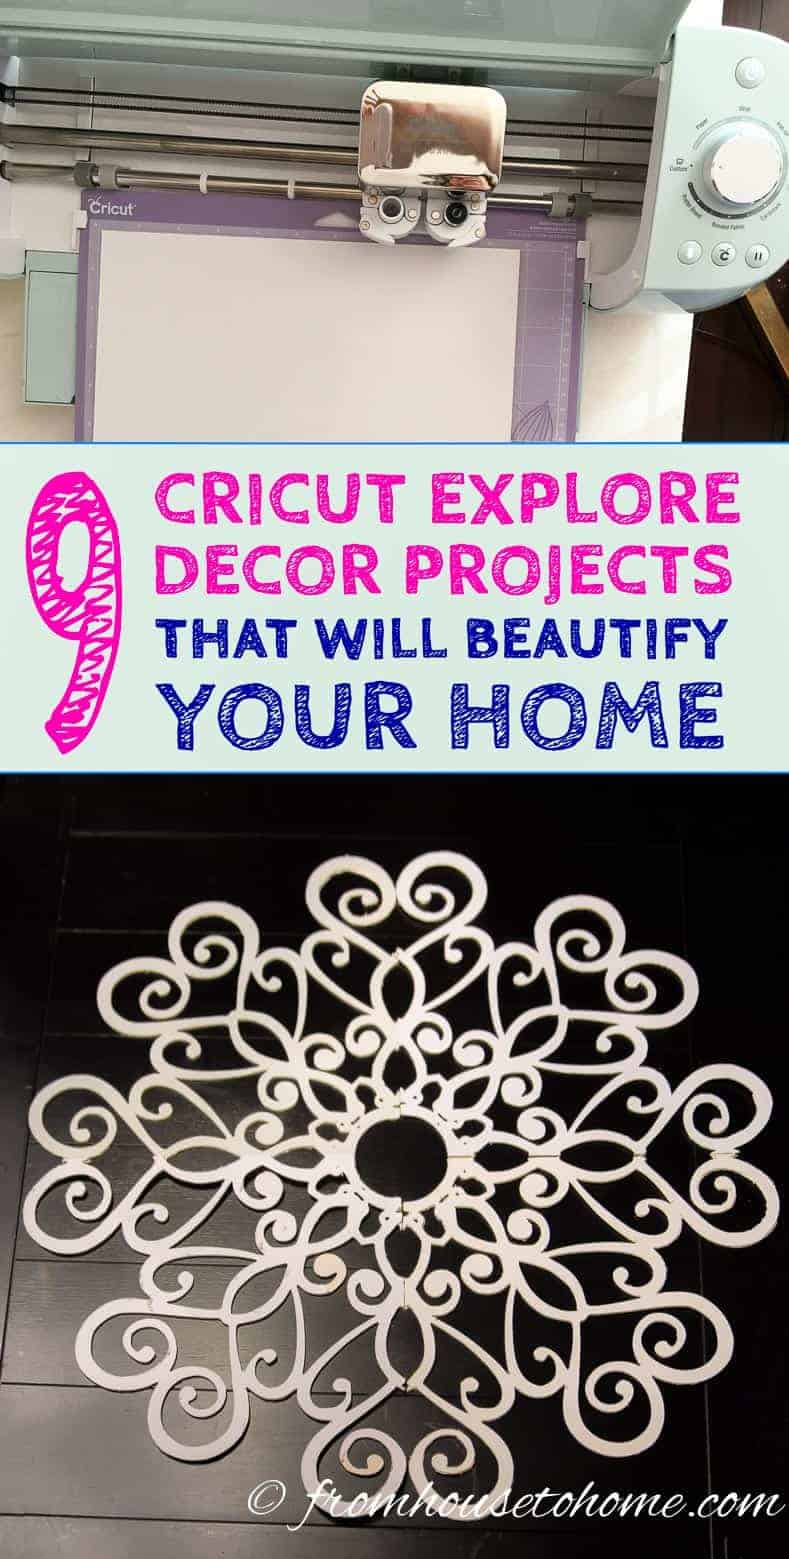 Cricut Explore decor projects that will beautify your home